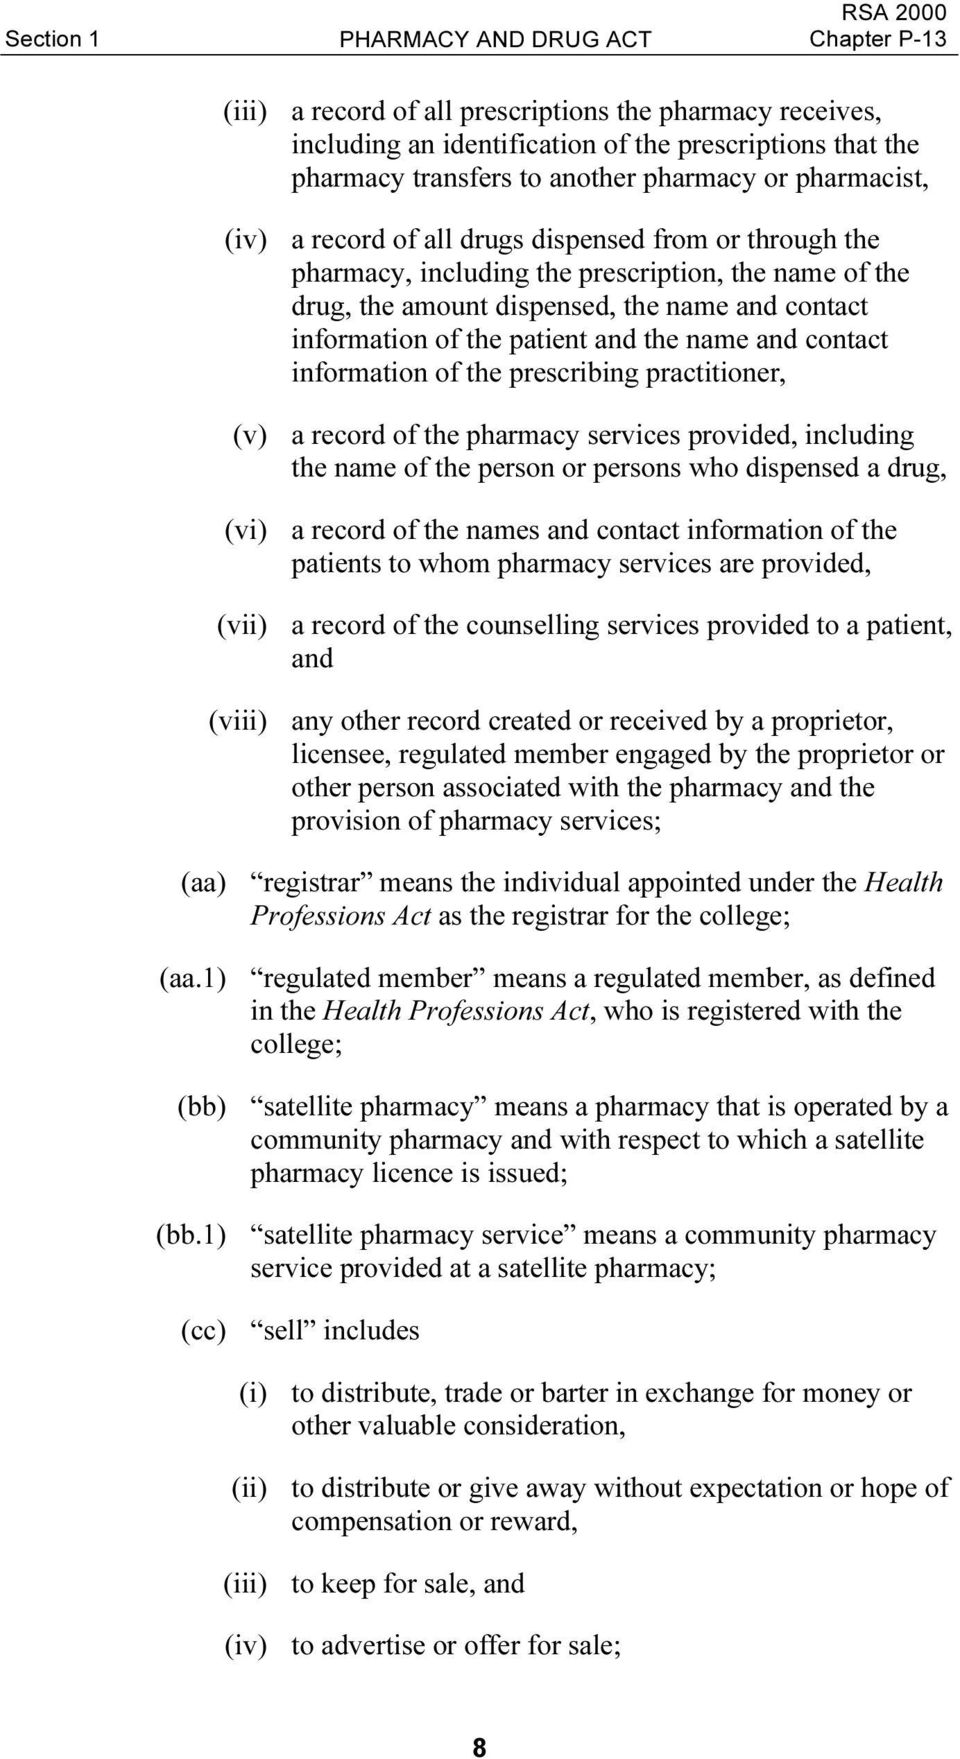 and the name and contact information of the prescribing practitioner, (v) a record of the pharmacy services provided, including the name of the person or persons who dispensed a drug, (vi) a record